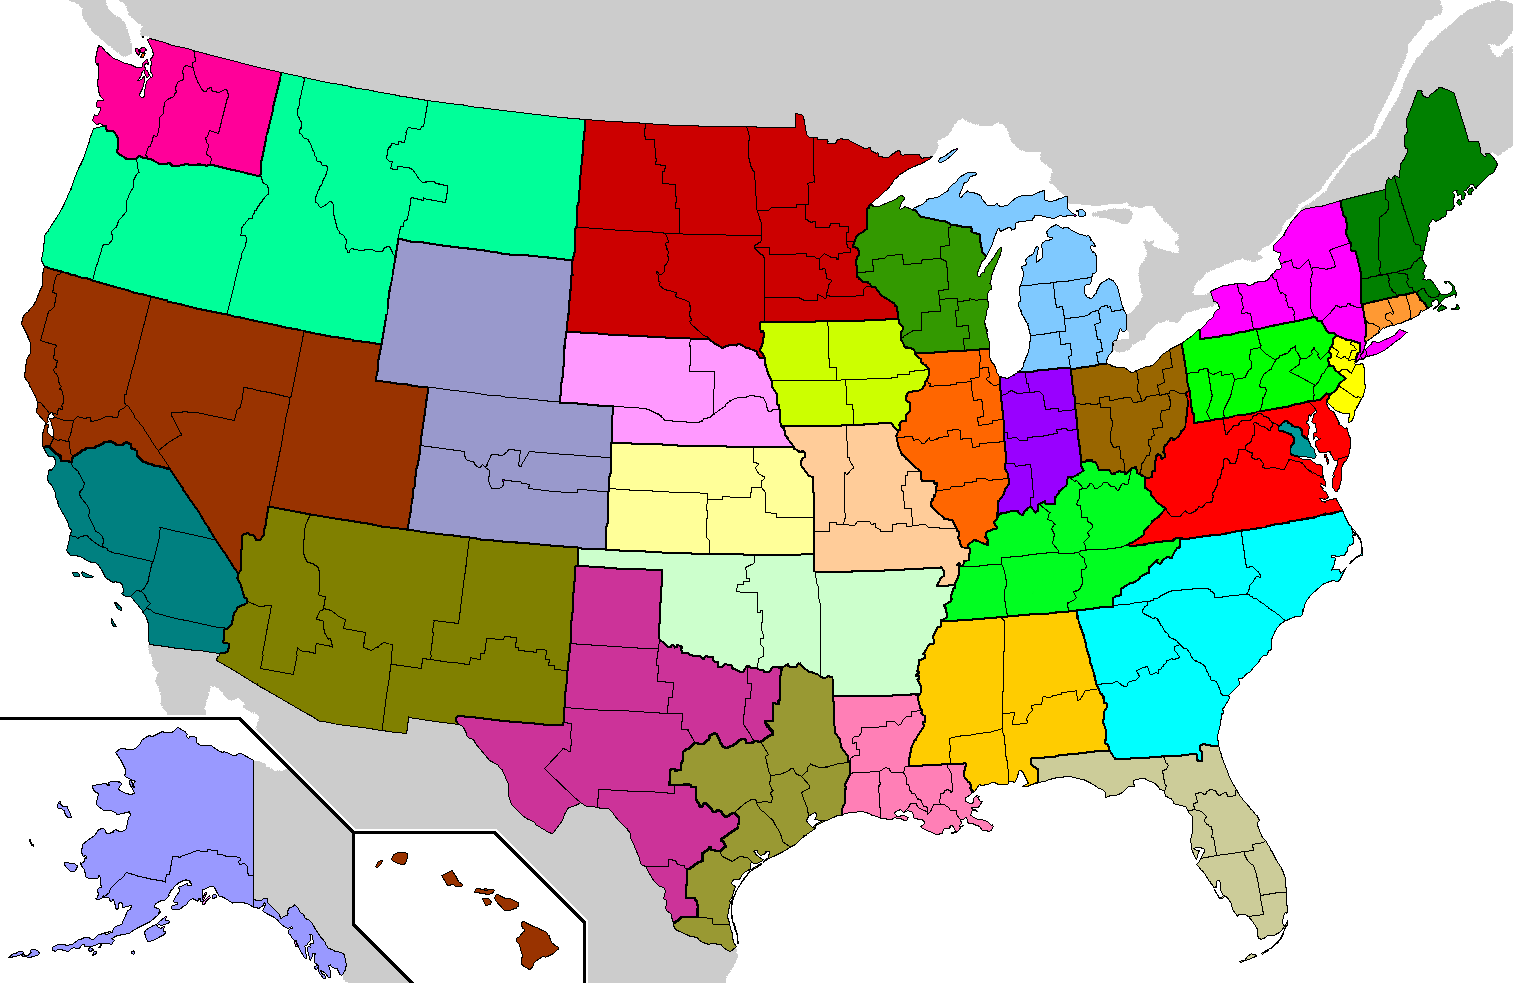 FileUS Roman Catholic Dioceses Mappng Wikimedia Commons - Usa religion map